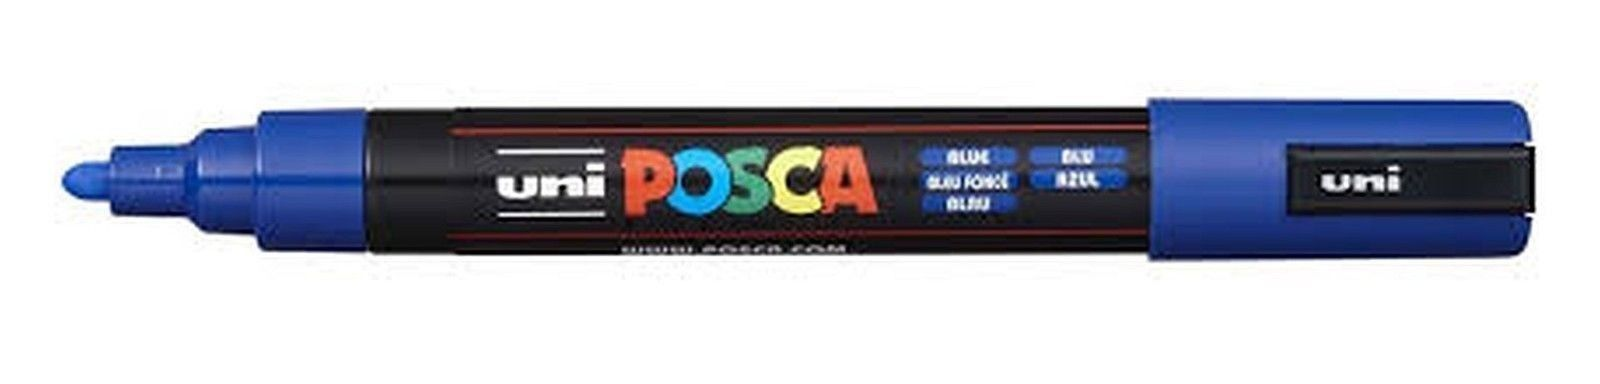 UNIPOSCA PC-5M 1,8-2,5 MM PUNTA MEDIA - COLORE BLU